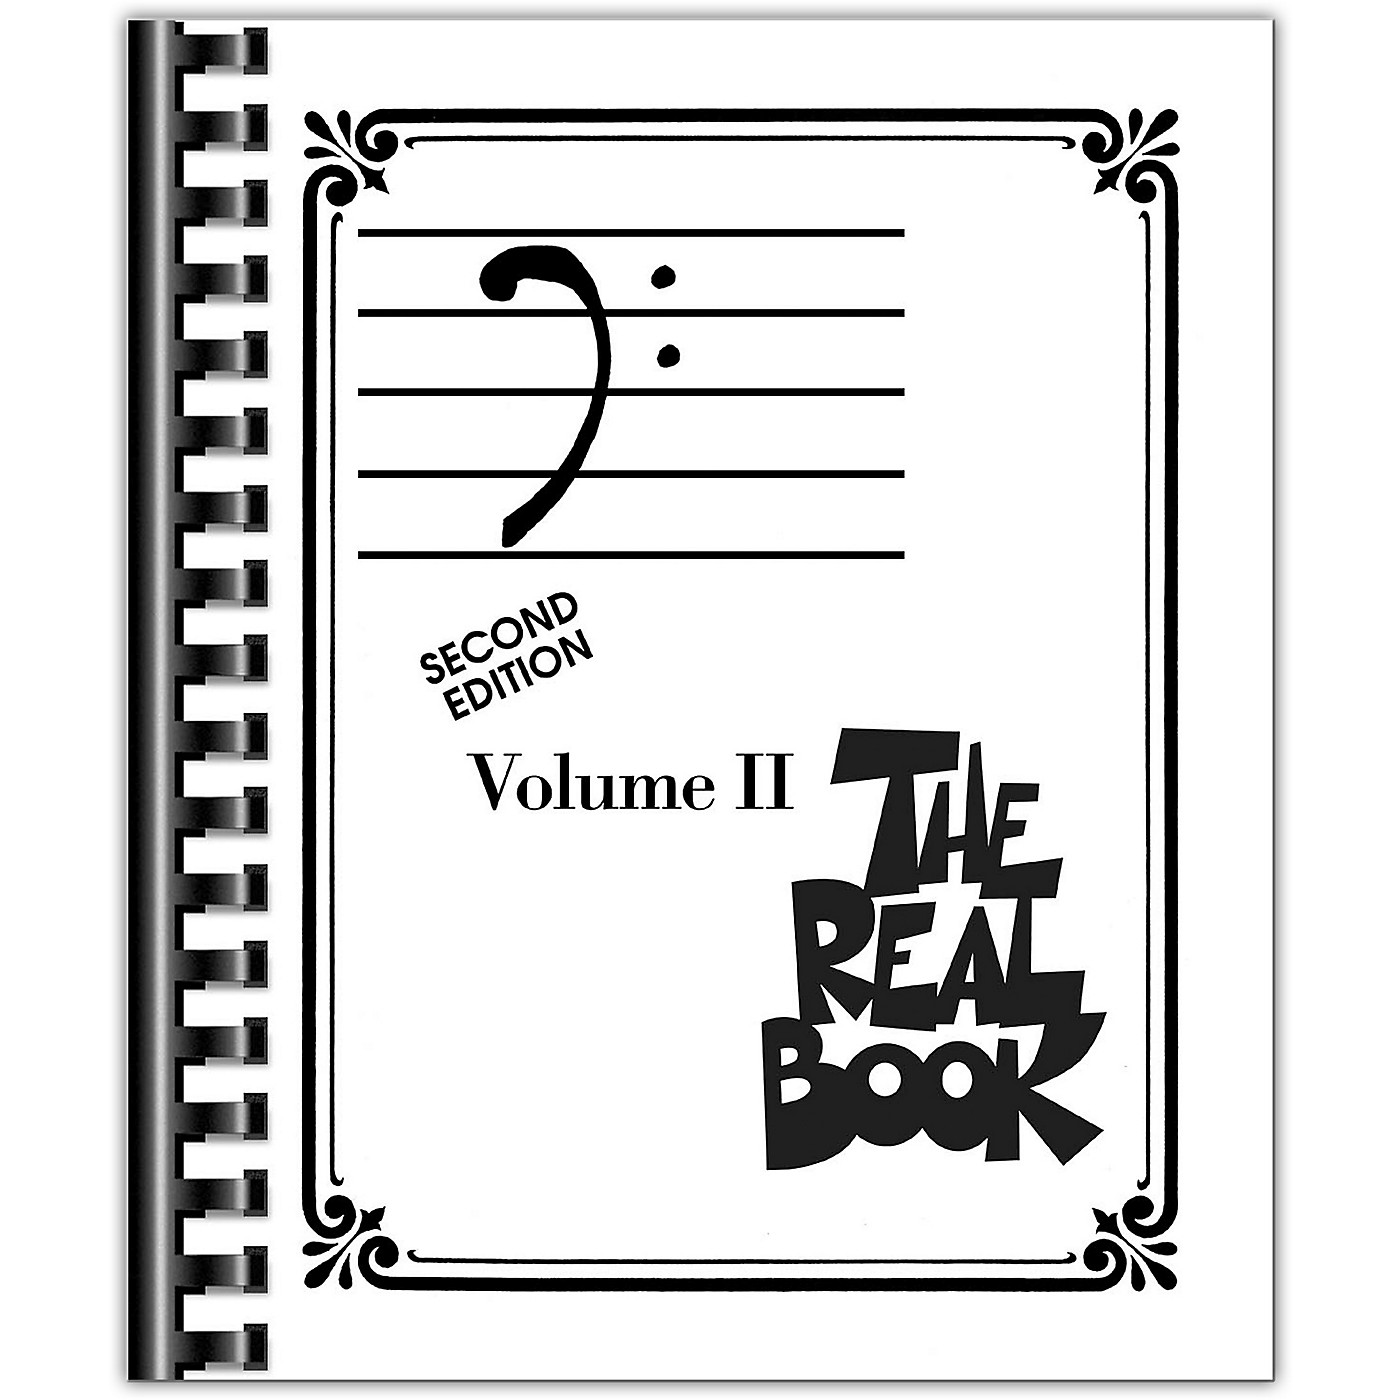 Hal Leonard The Real Book Volume 2 - C Edition Bass Clef Edition thumbnail